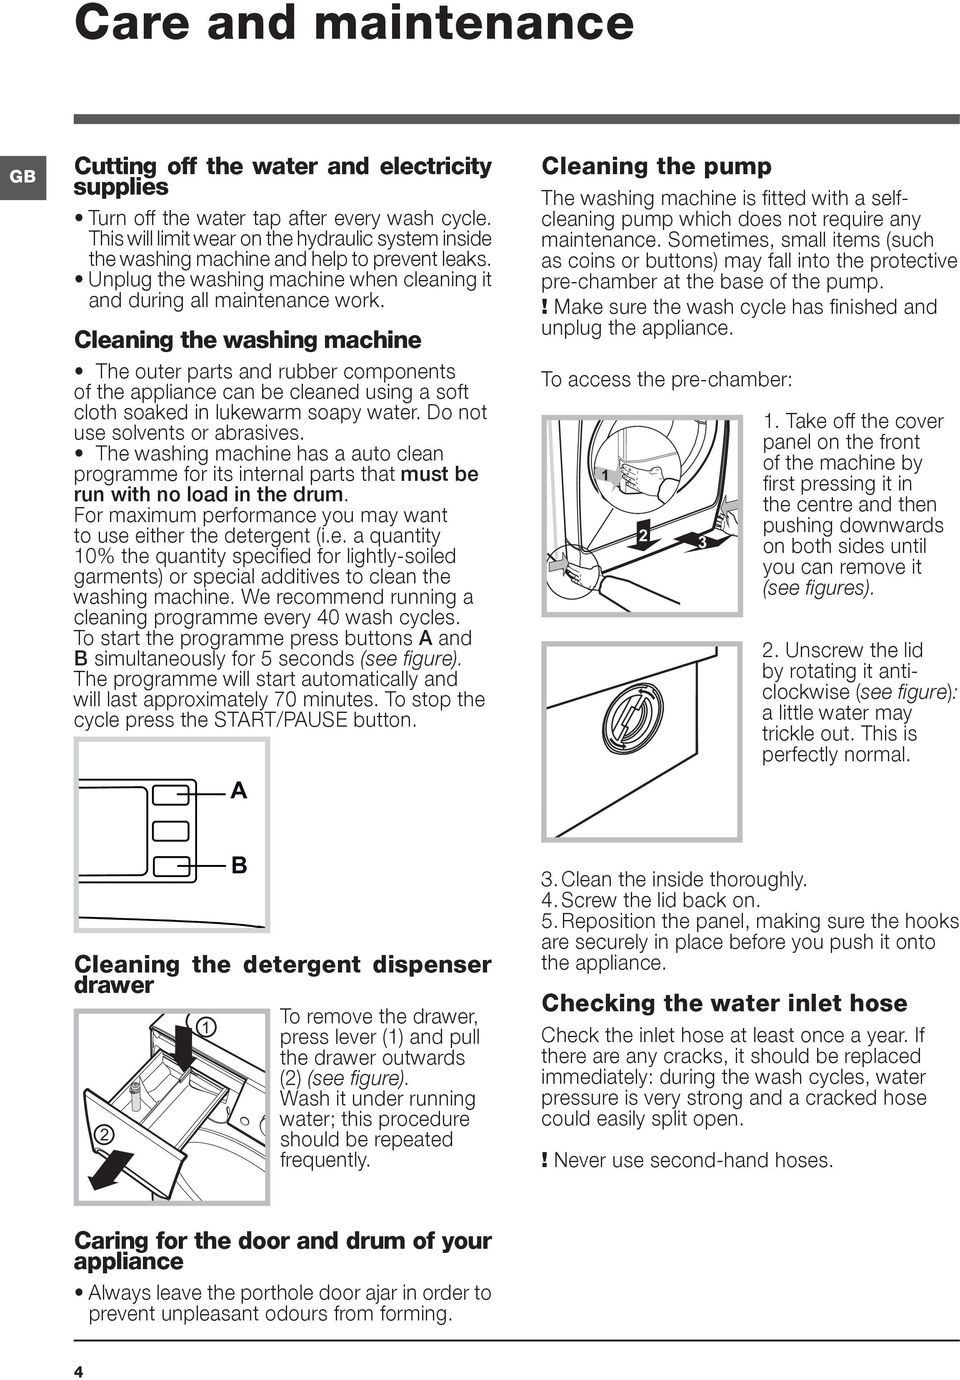 Cleaning the washing machine The outer parts and rubber components of the appliance can be cleaned using a soft cloth soaked in lukewarm soapy water. Do not use solvents or abrasives.